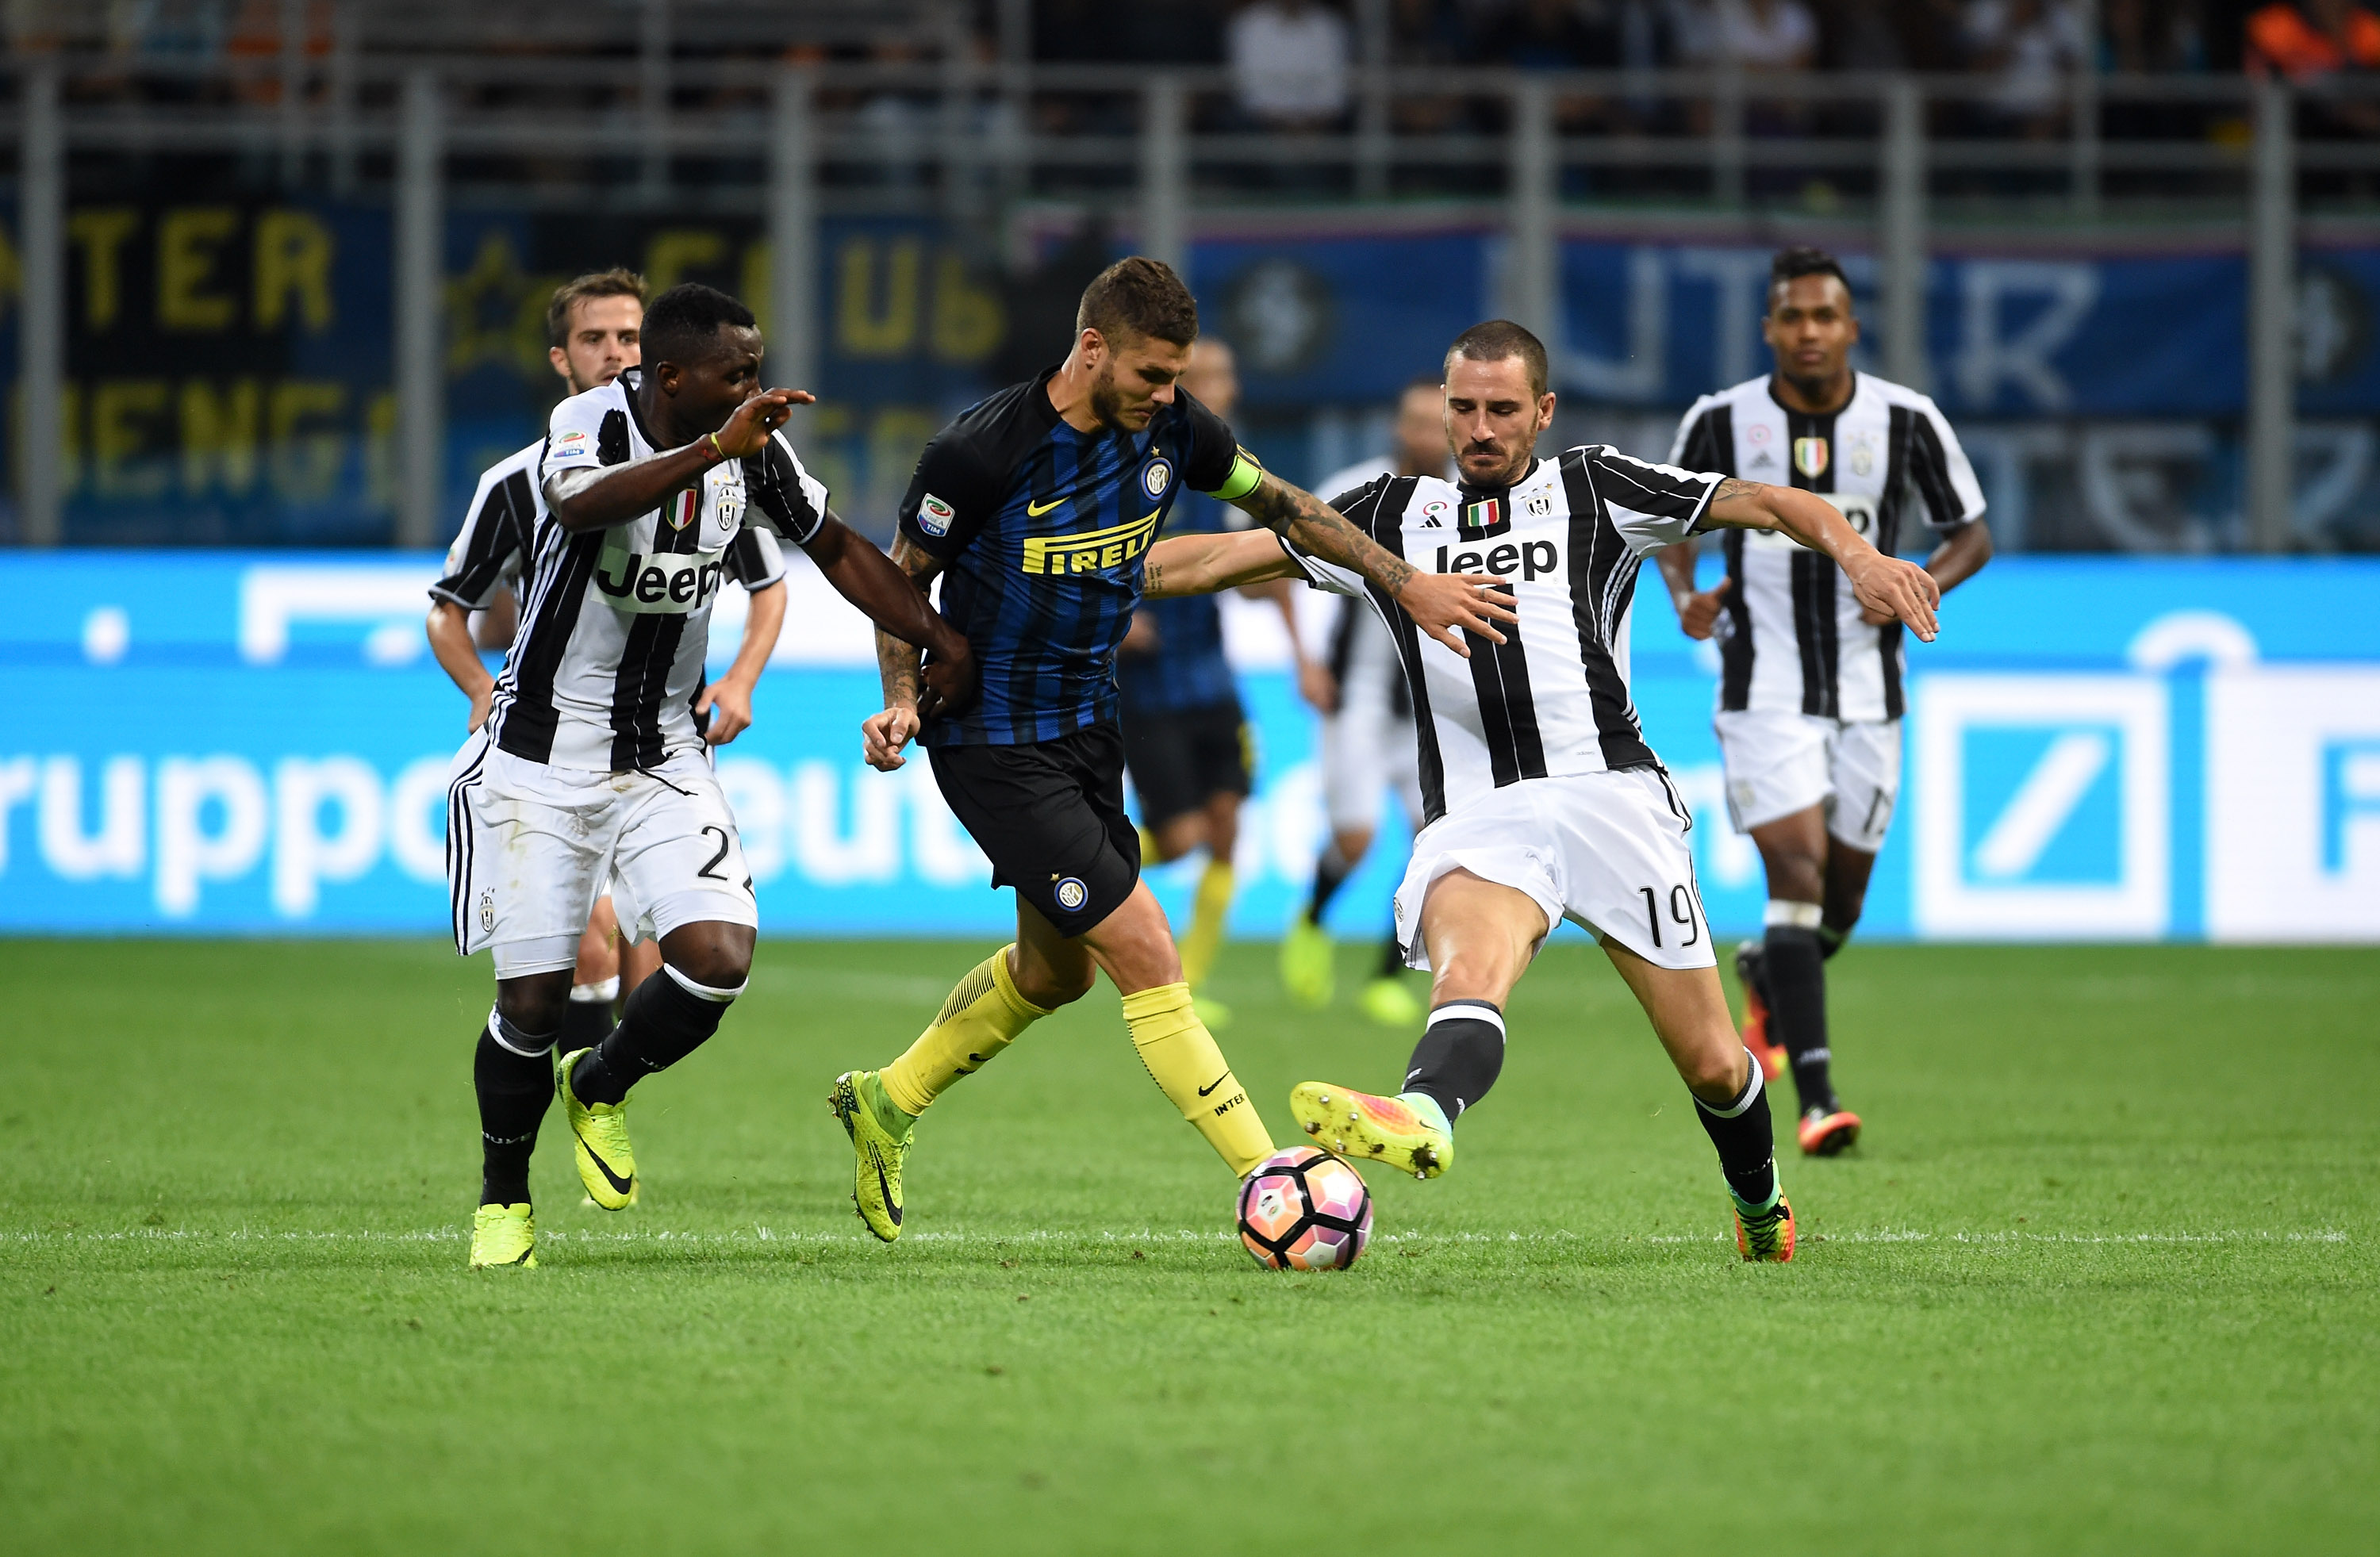 juventus-inter - photo #4